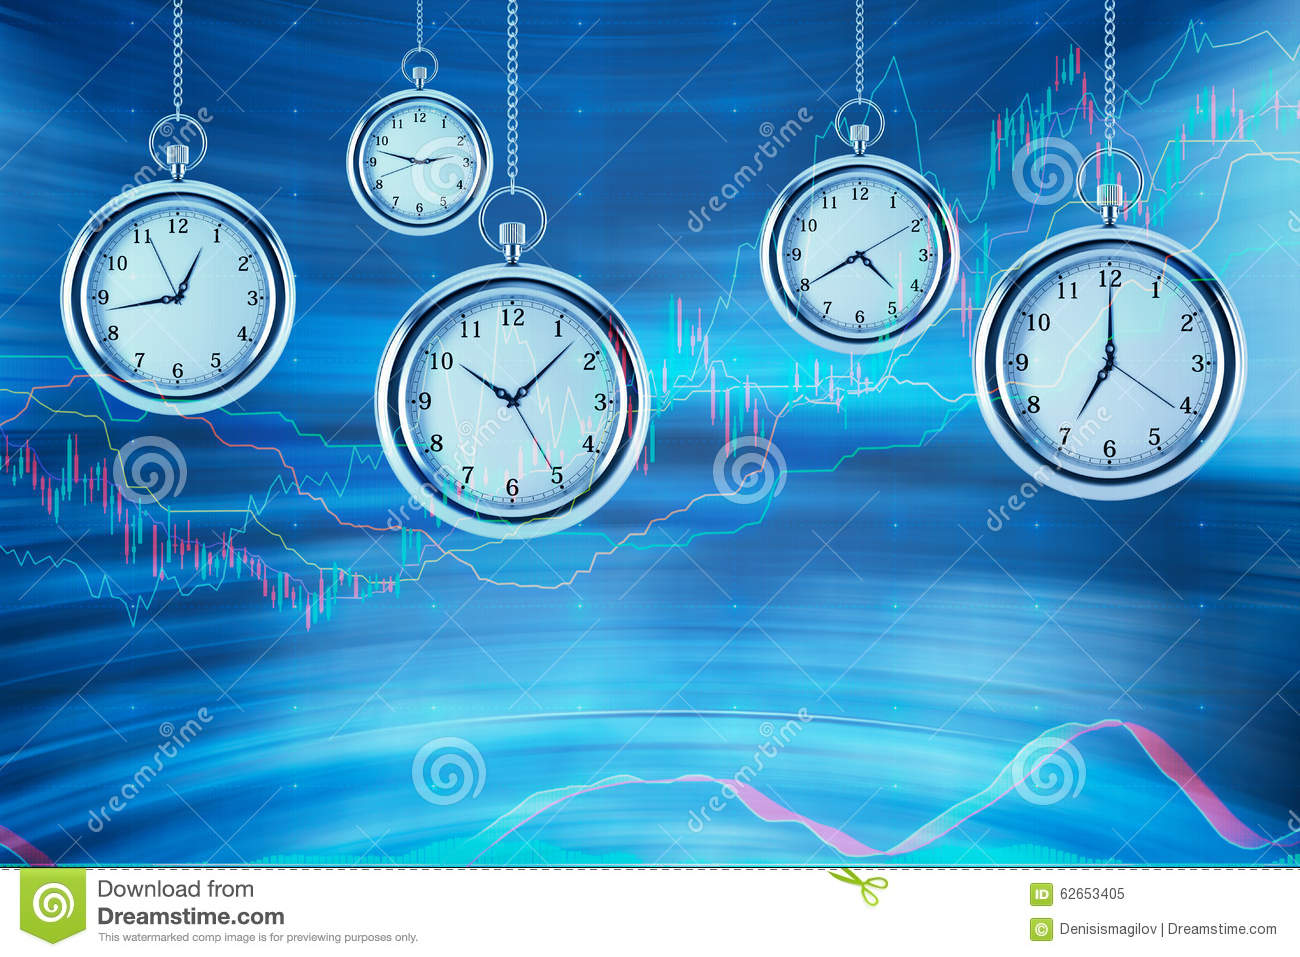 7 the concept of time value Topic 2: time value of money chapter 7 • explain the concept of the time value of money • explain the common types of cash flows encountered in financial analysis and how to adjust for each type when making time value of money calculations.